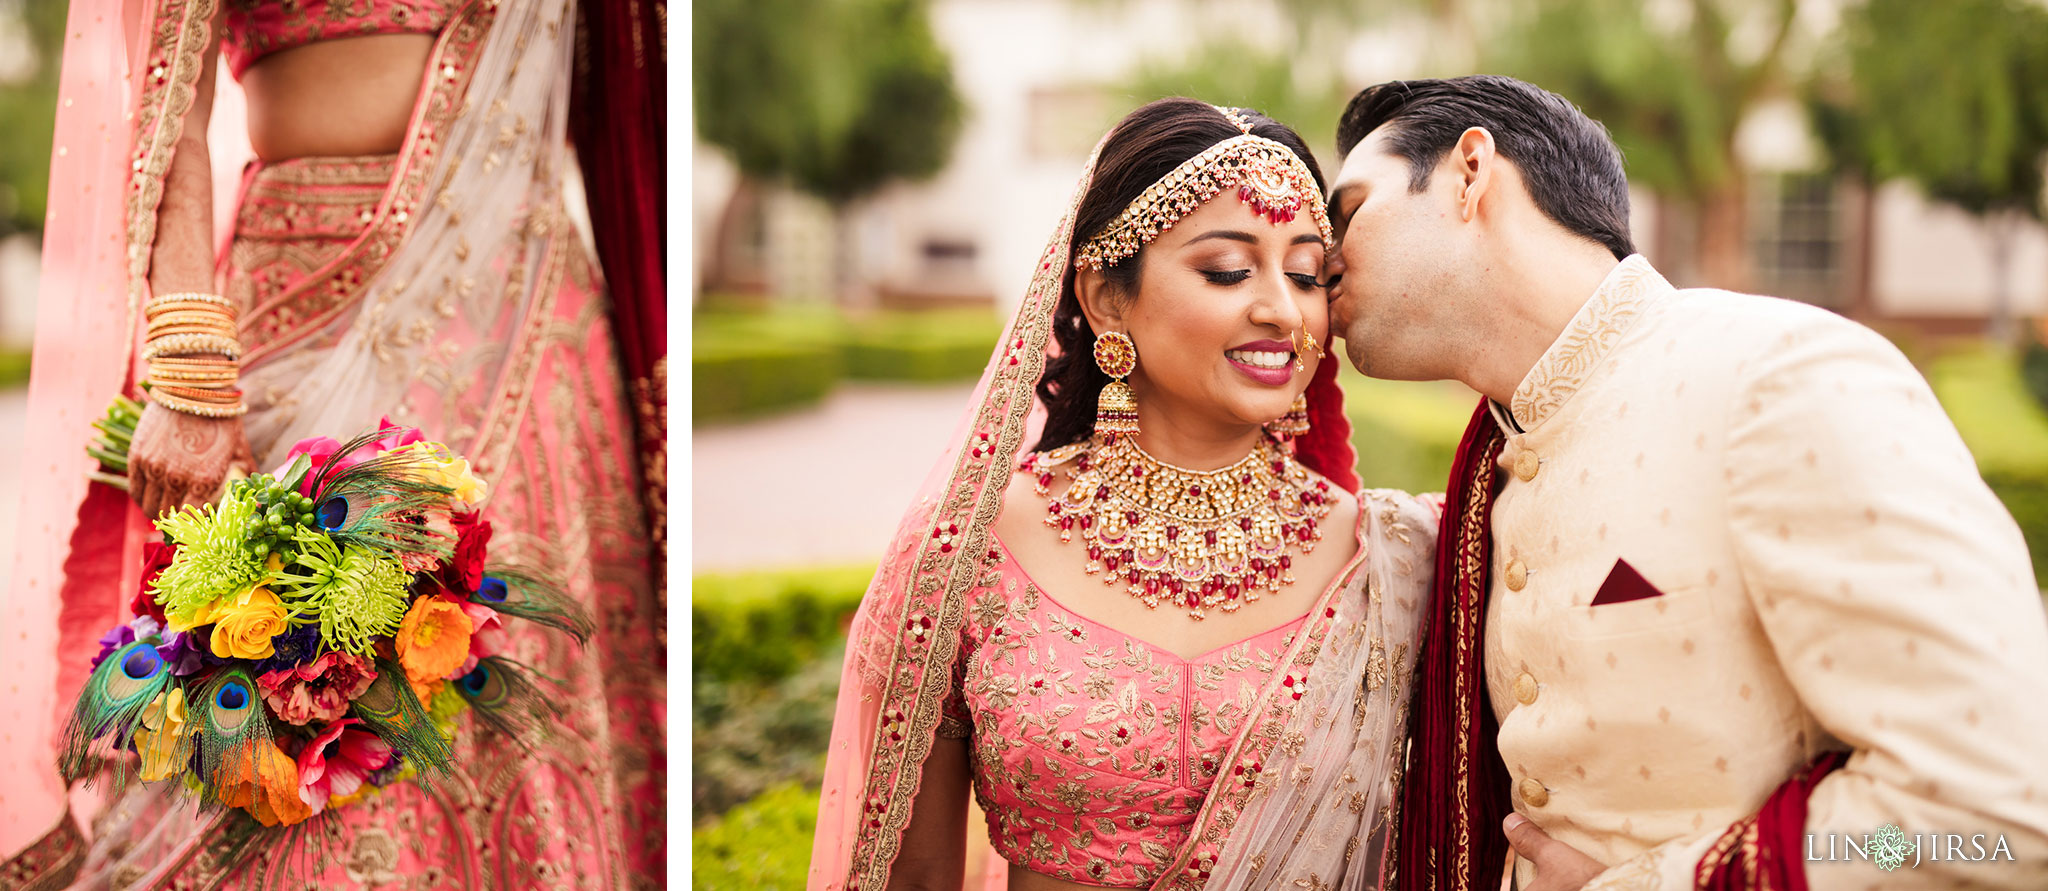 15 Union Station Los Angeles Indian Wedding Photography